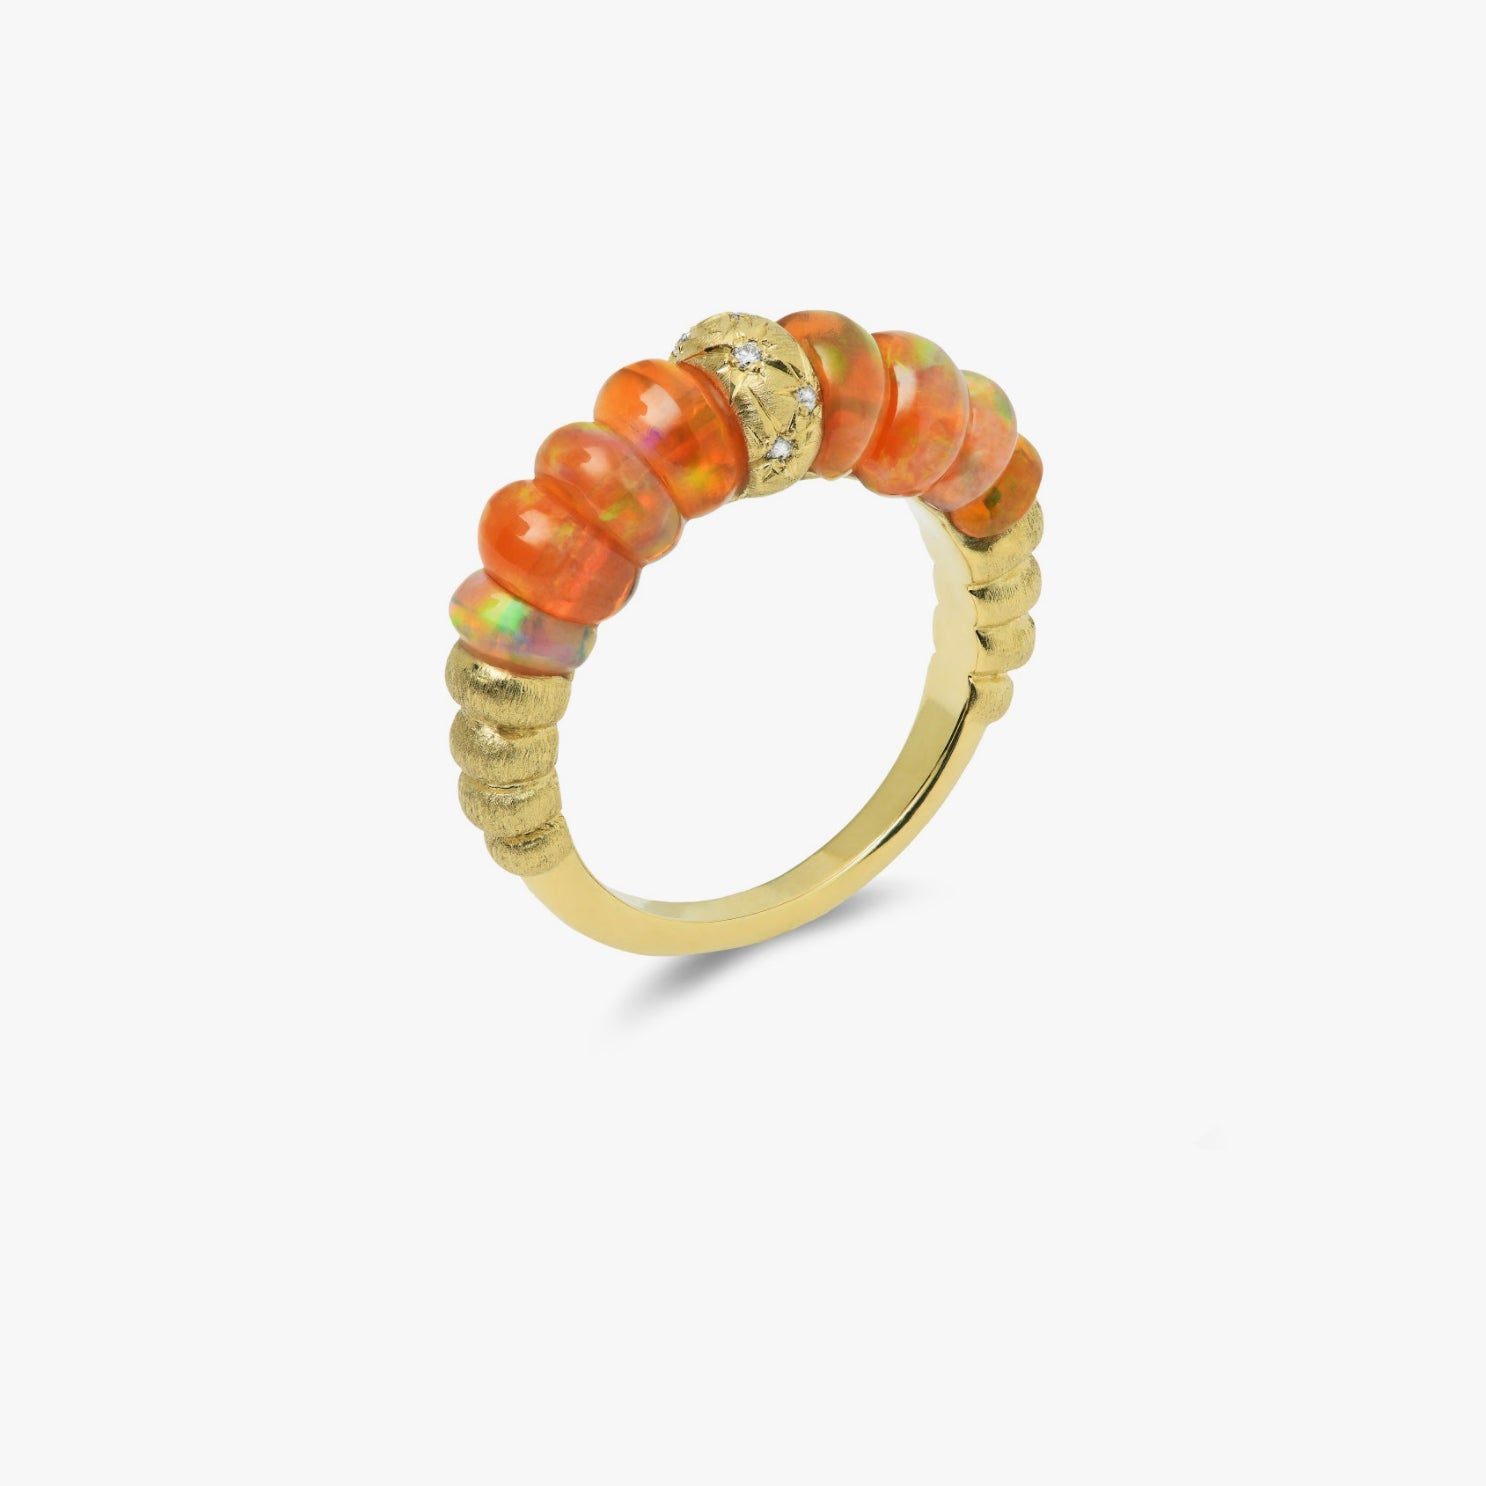 Constellation Collection Band Style Ring with Fire Opals